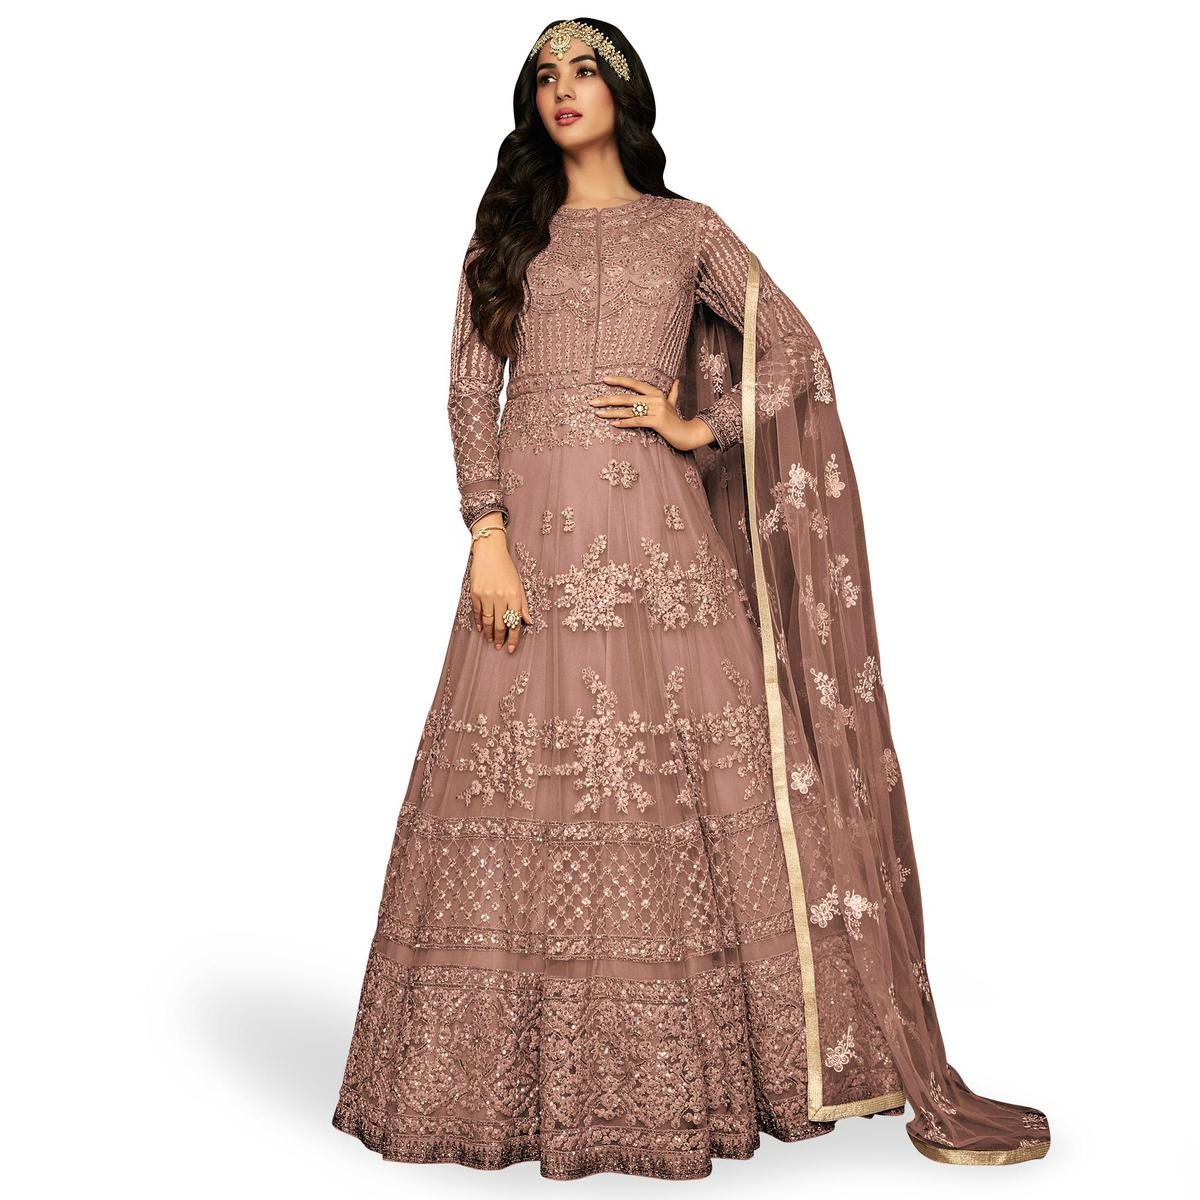 Ravishing Mauve Colored Partywear Embroidered Netted Anarkali Suit